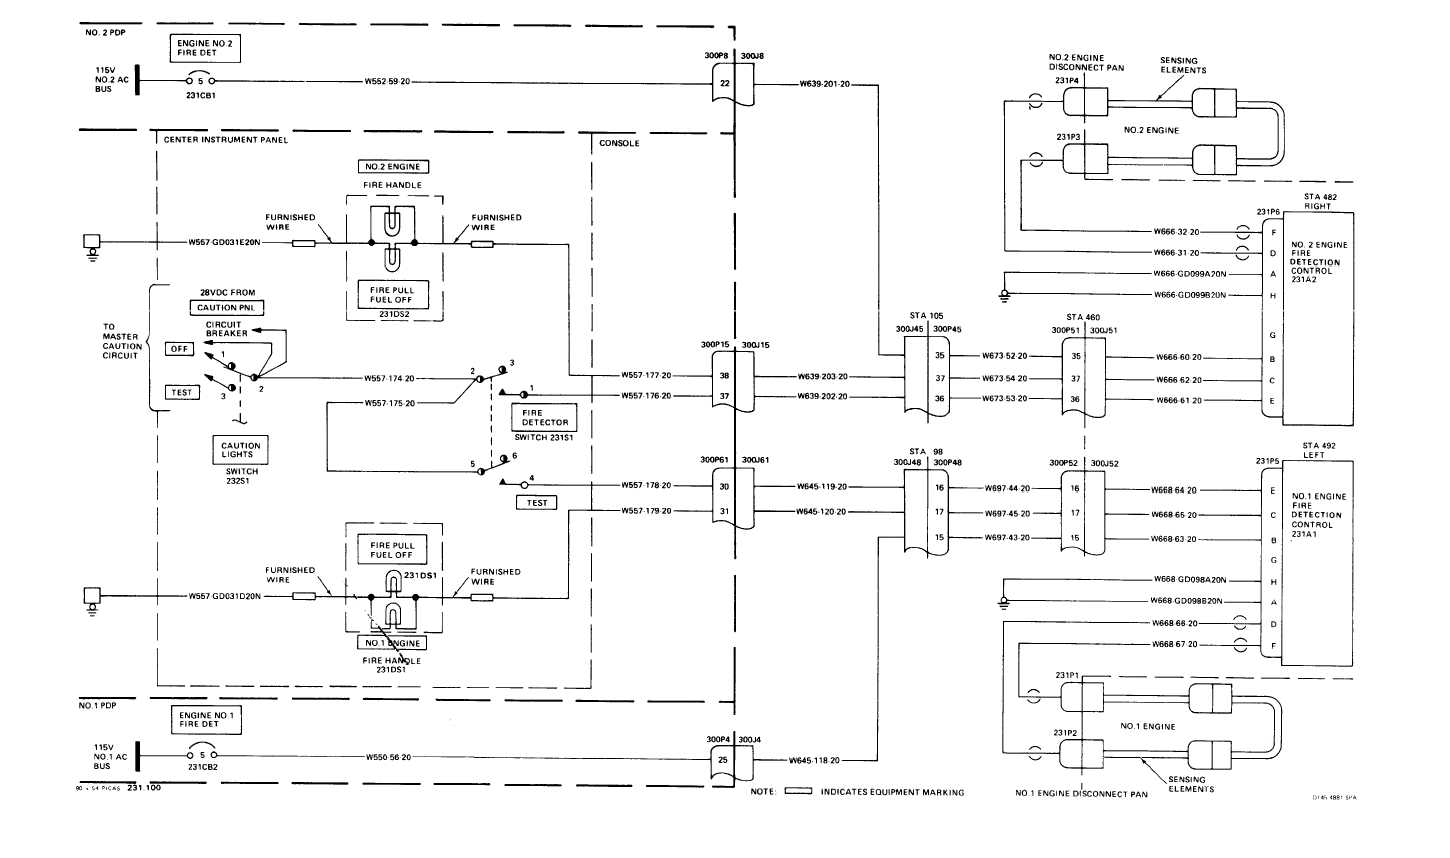 TM 55 1520 240 T 3_548_1 system wiring diagram 12 volt system wiring diagram \u2022 wiring Fire Alarm Annunciator Panel at panicattacktreatment.co